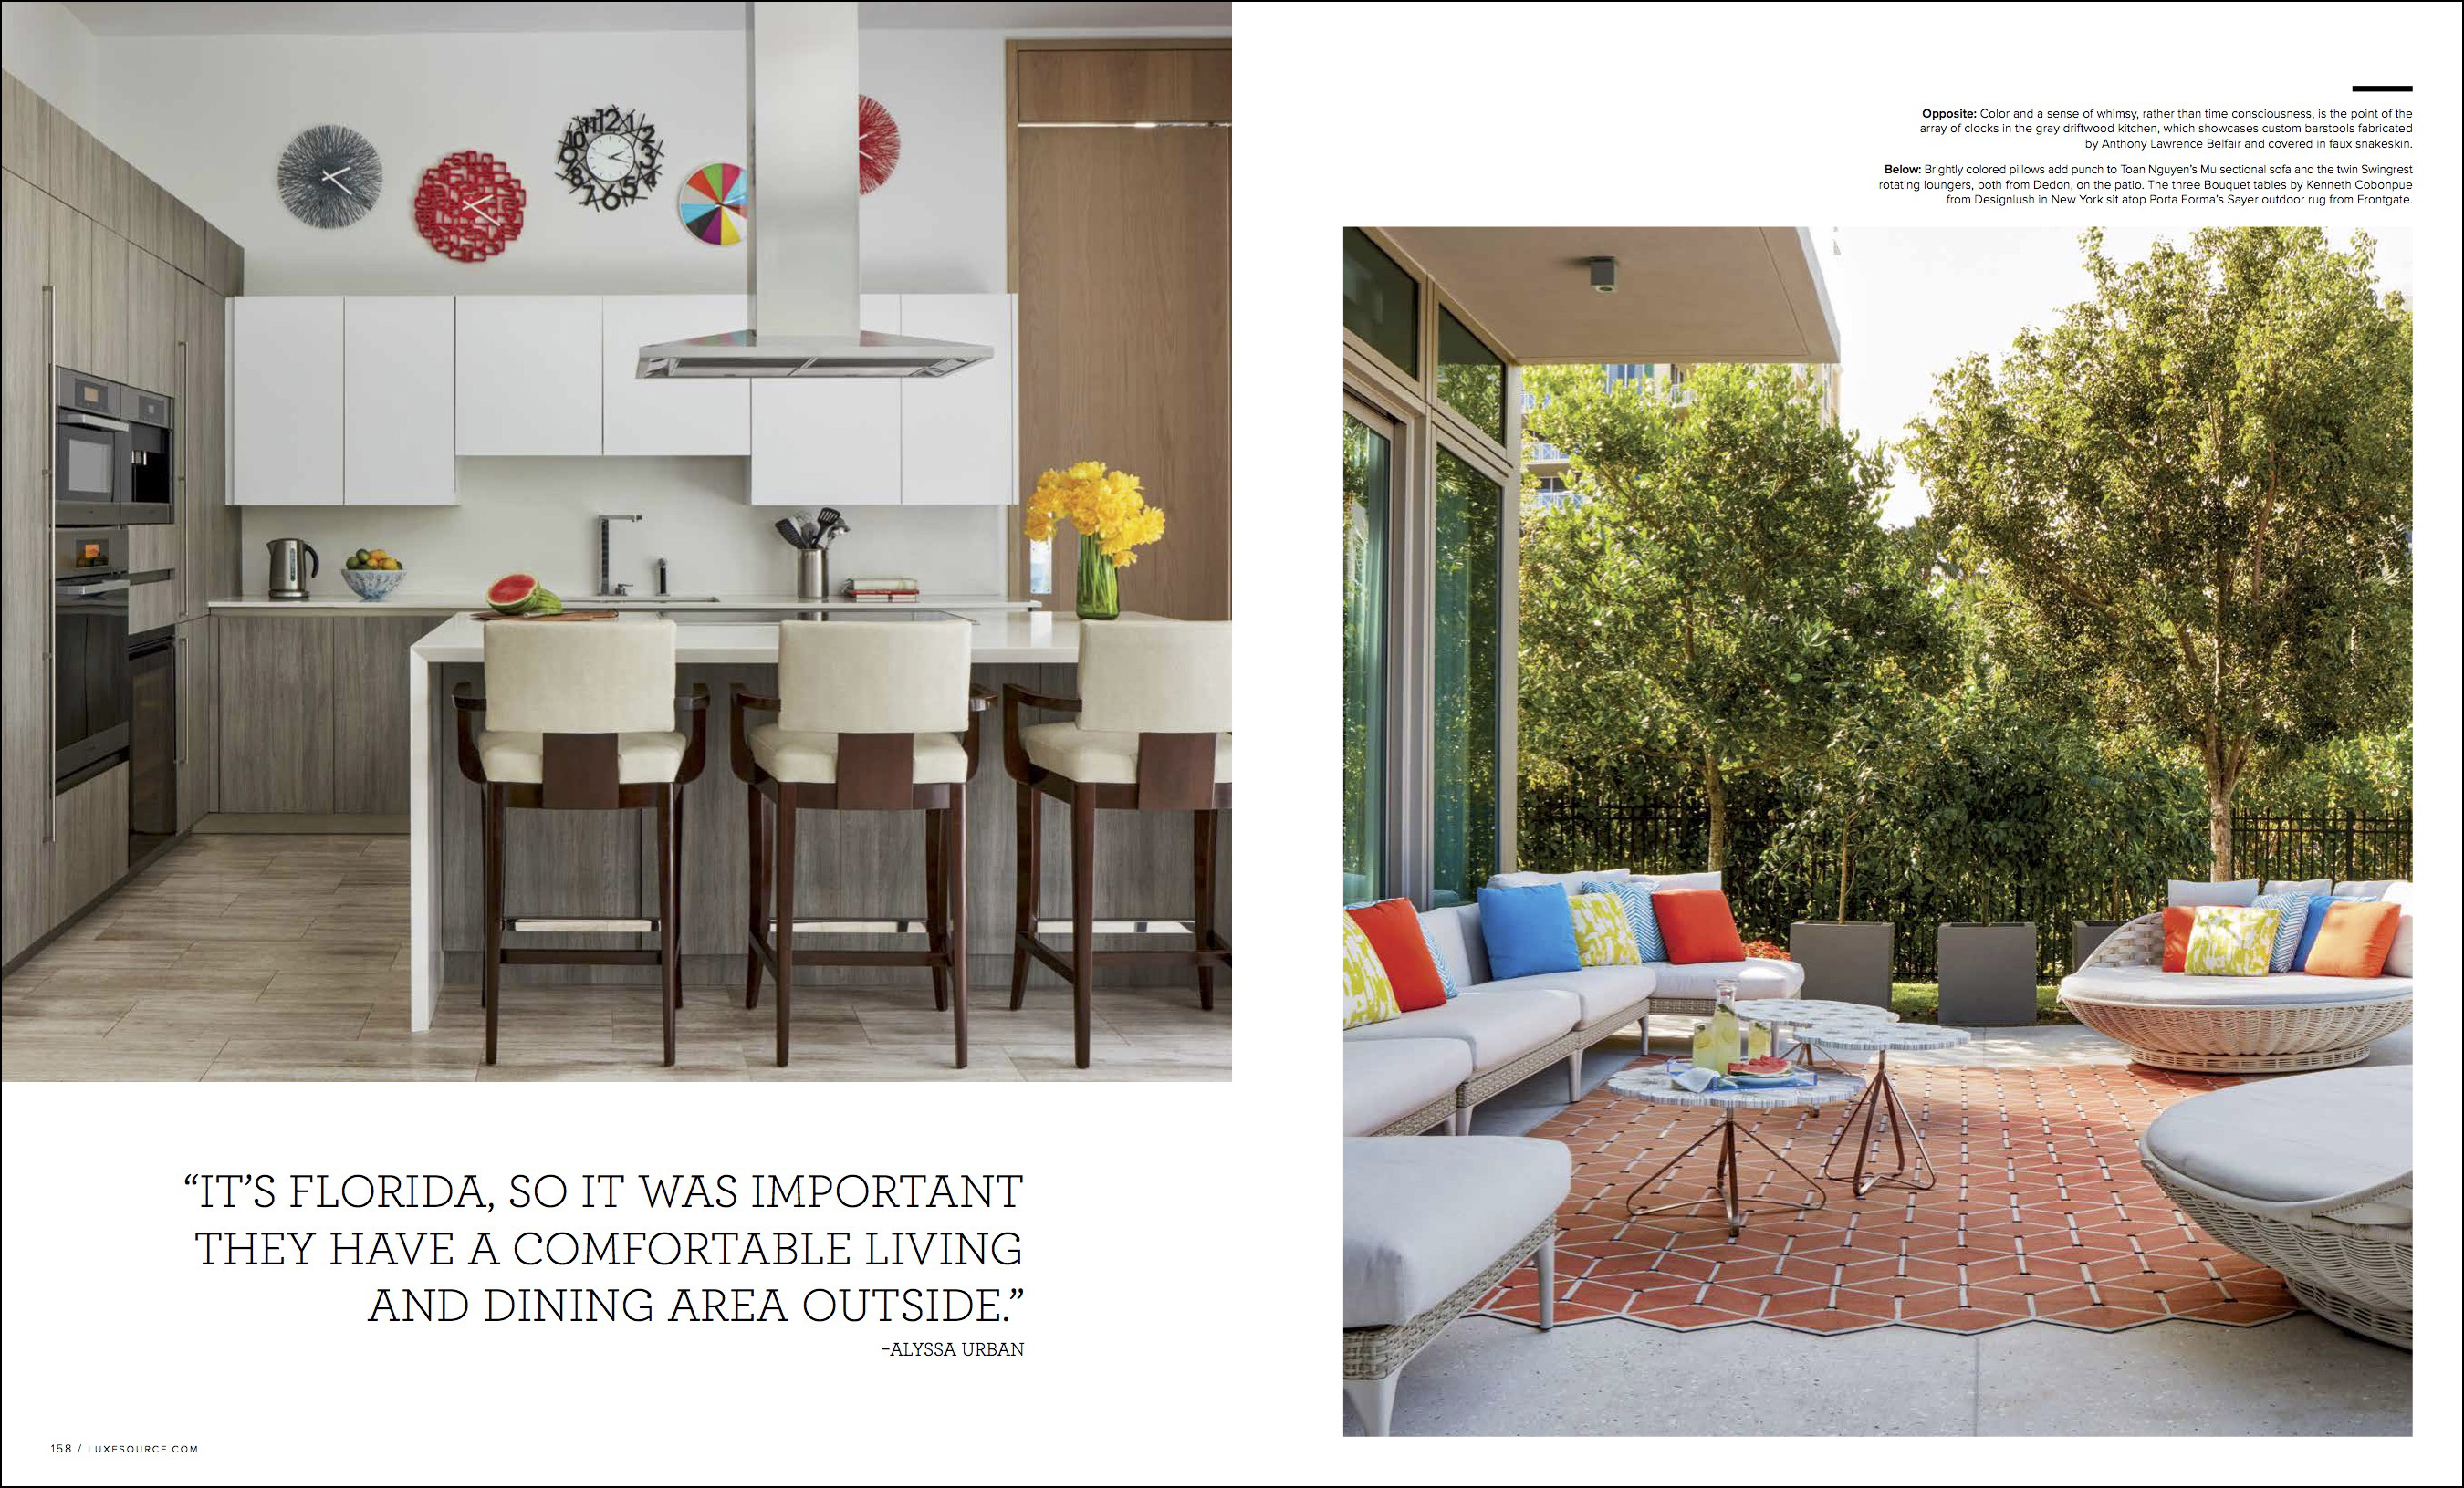 The Luxe Magazine Miami Cover For May June 2017 Features An Interior Design Project By Cullman Kravis New York We Were Thrilled When